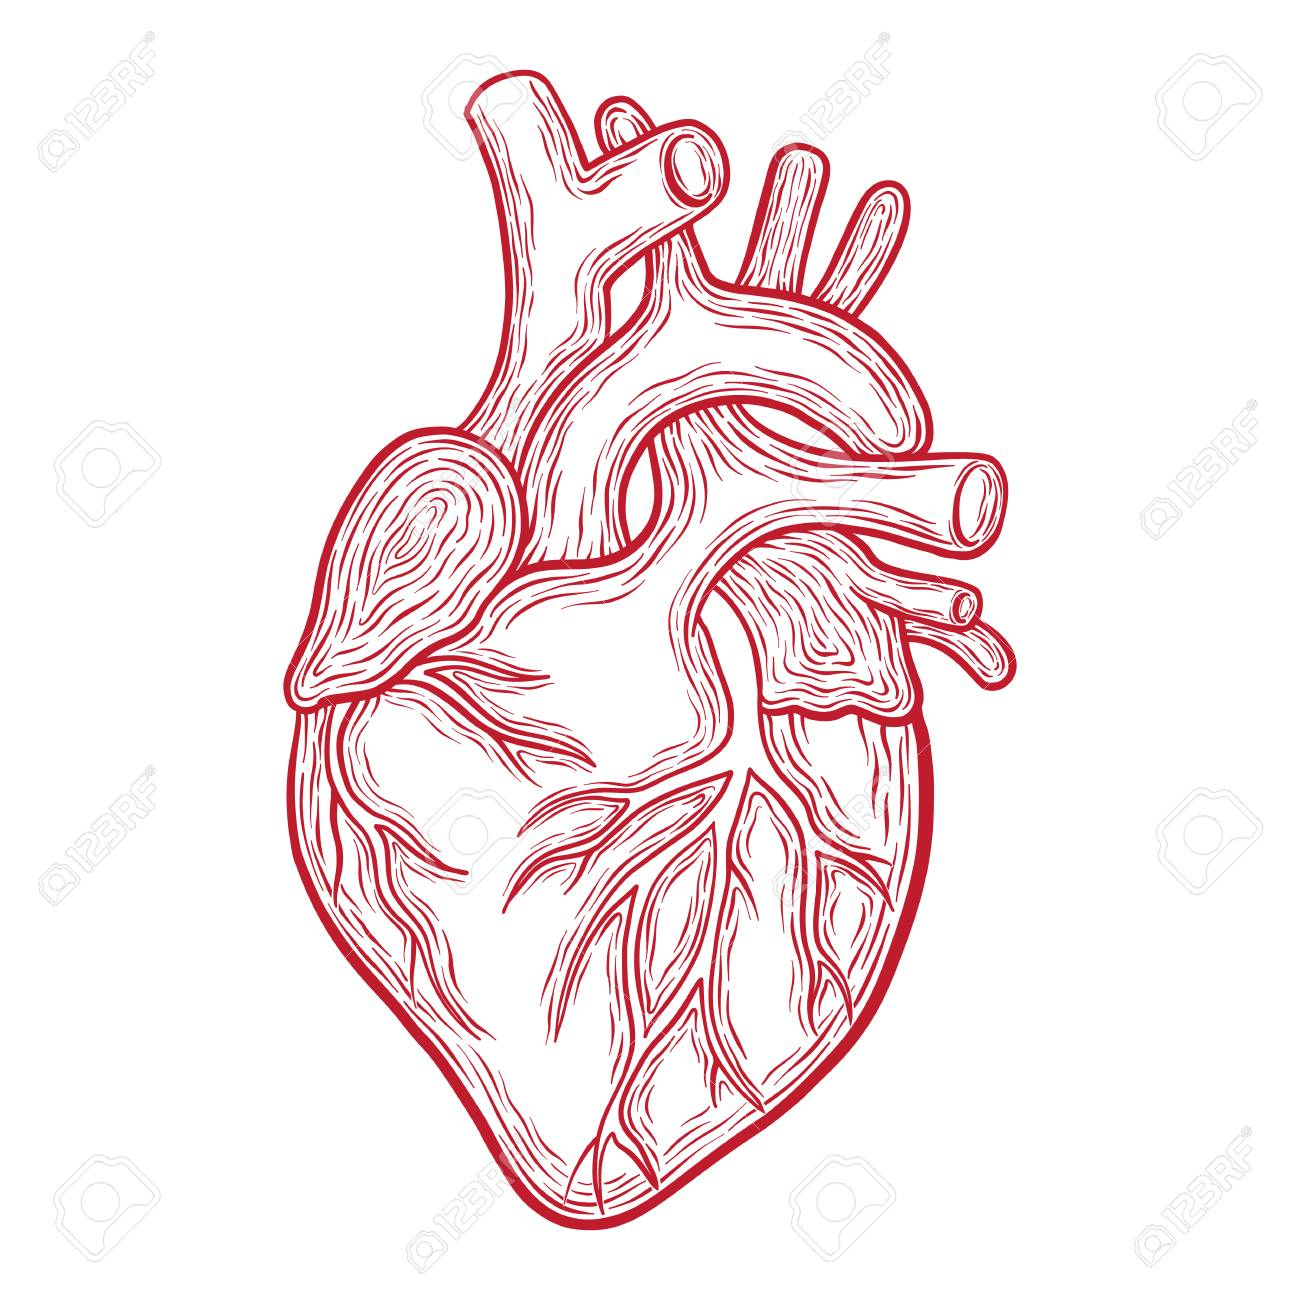 Human Heart Anatomy Drawing | Free download on ClipArtMag